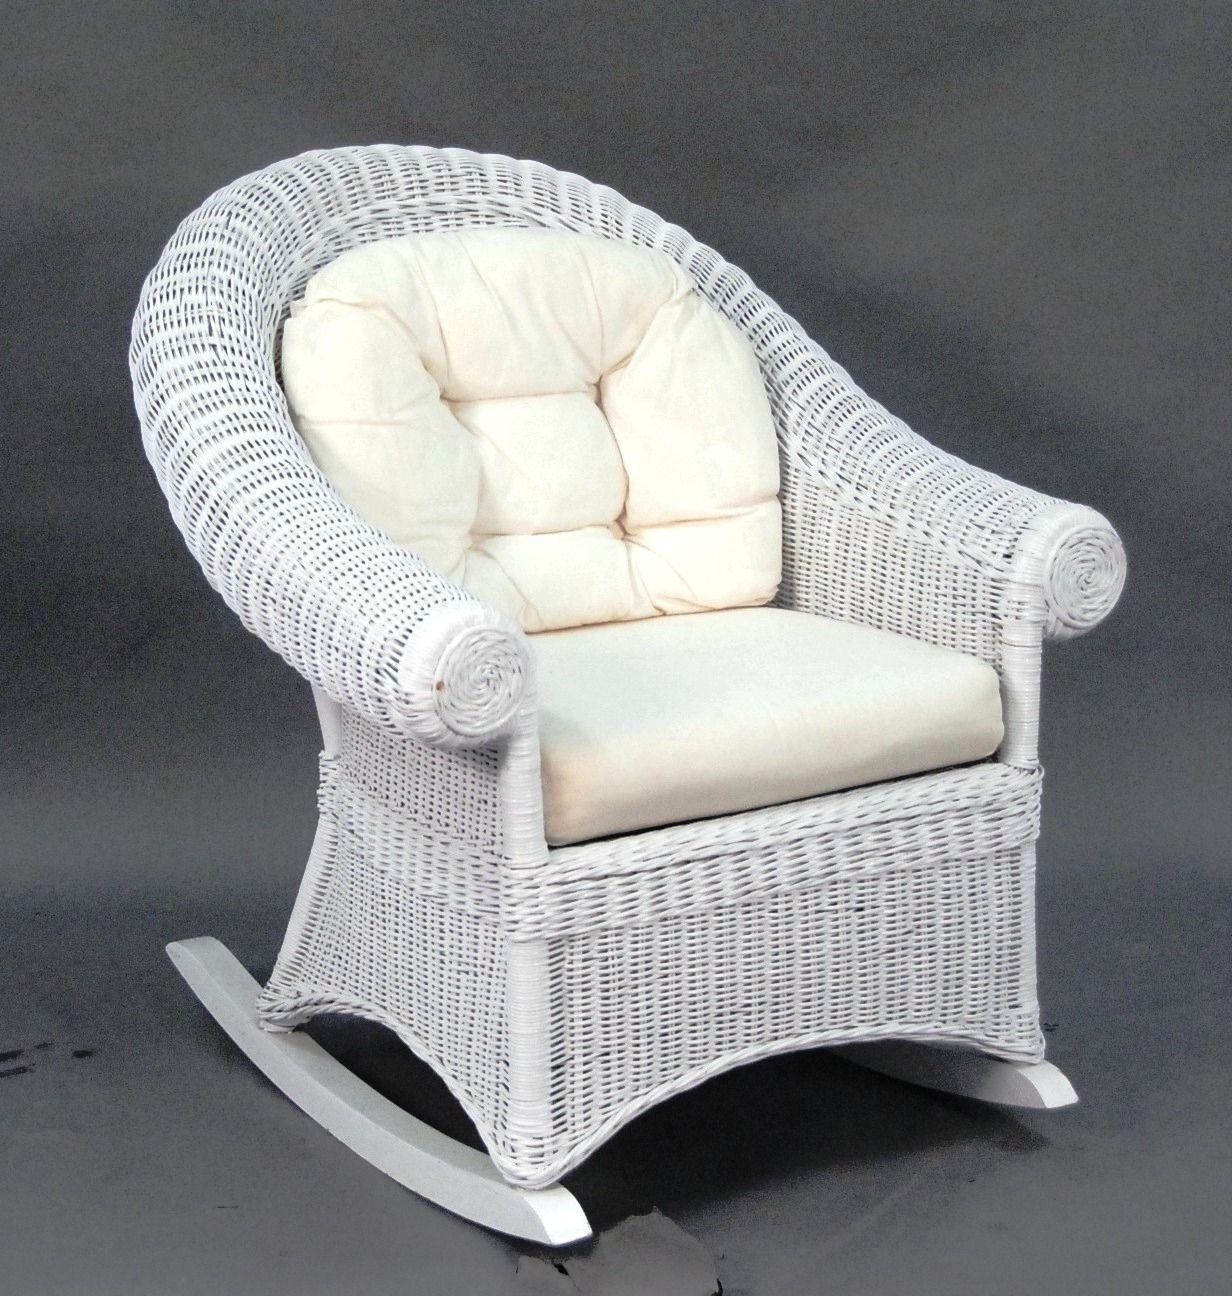 White Wicker Rocking Chairs In 2018 Choosing A White Wicker Rocking Chair – Http://www (View 3 of 15)